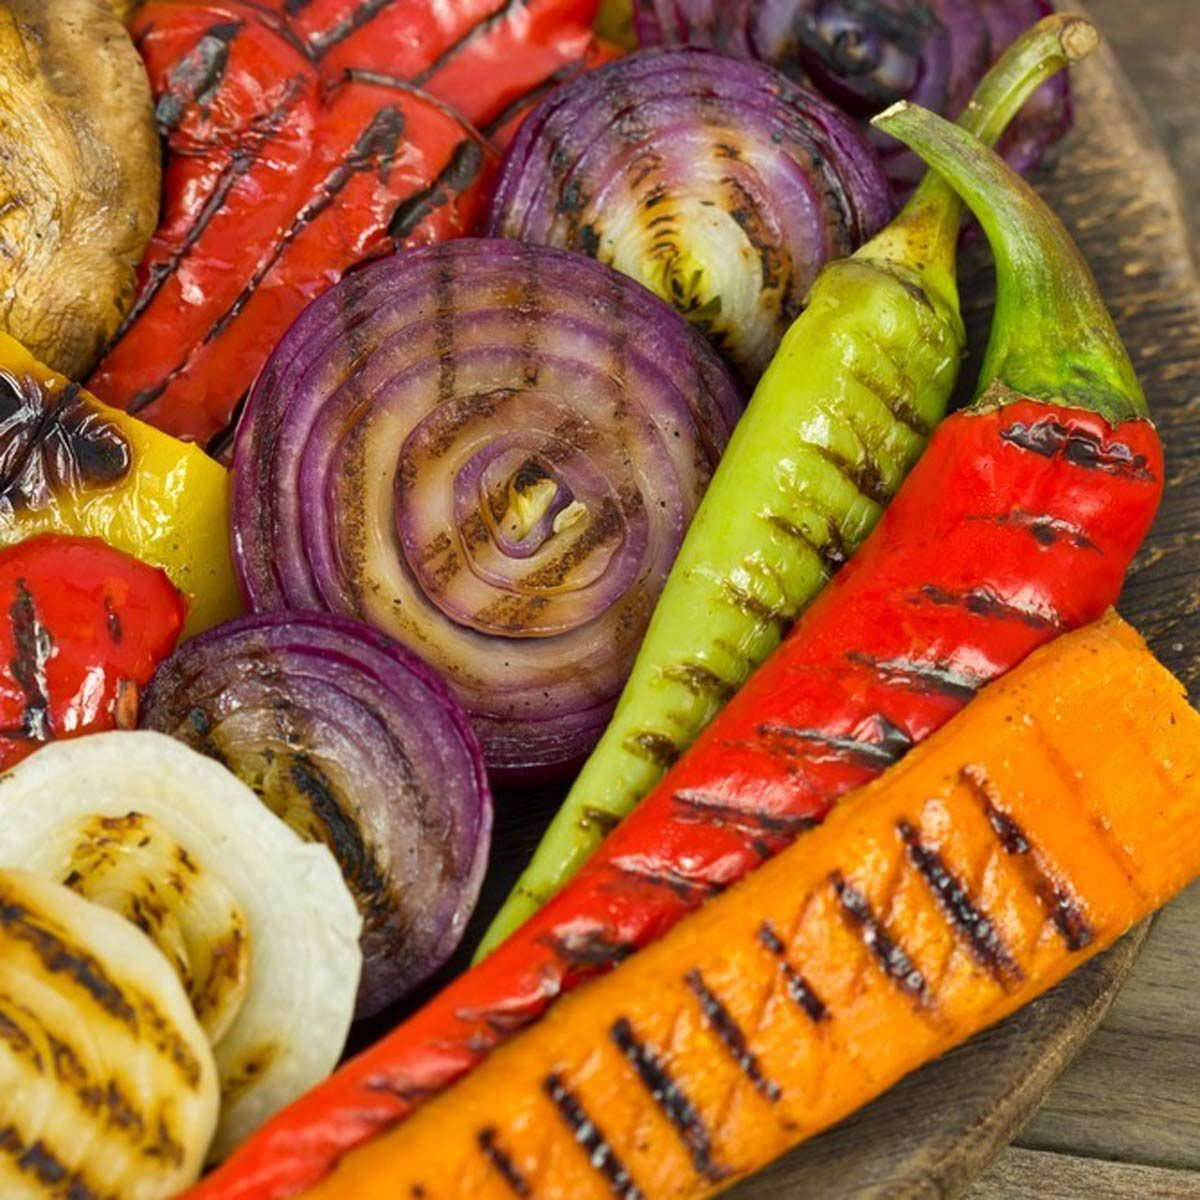 dfh17sep049_164421674-13 grilled vegetables